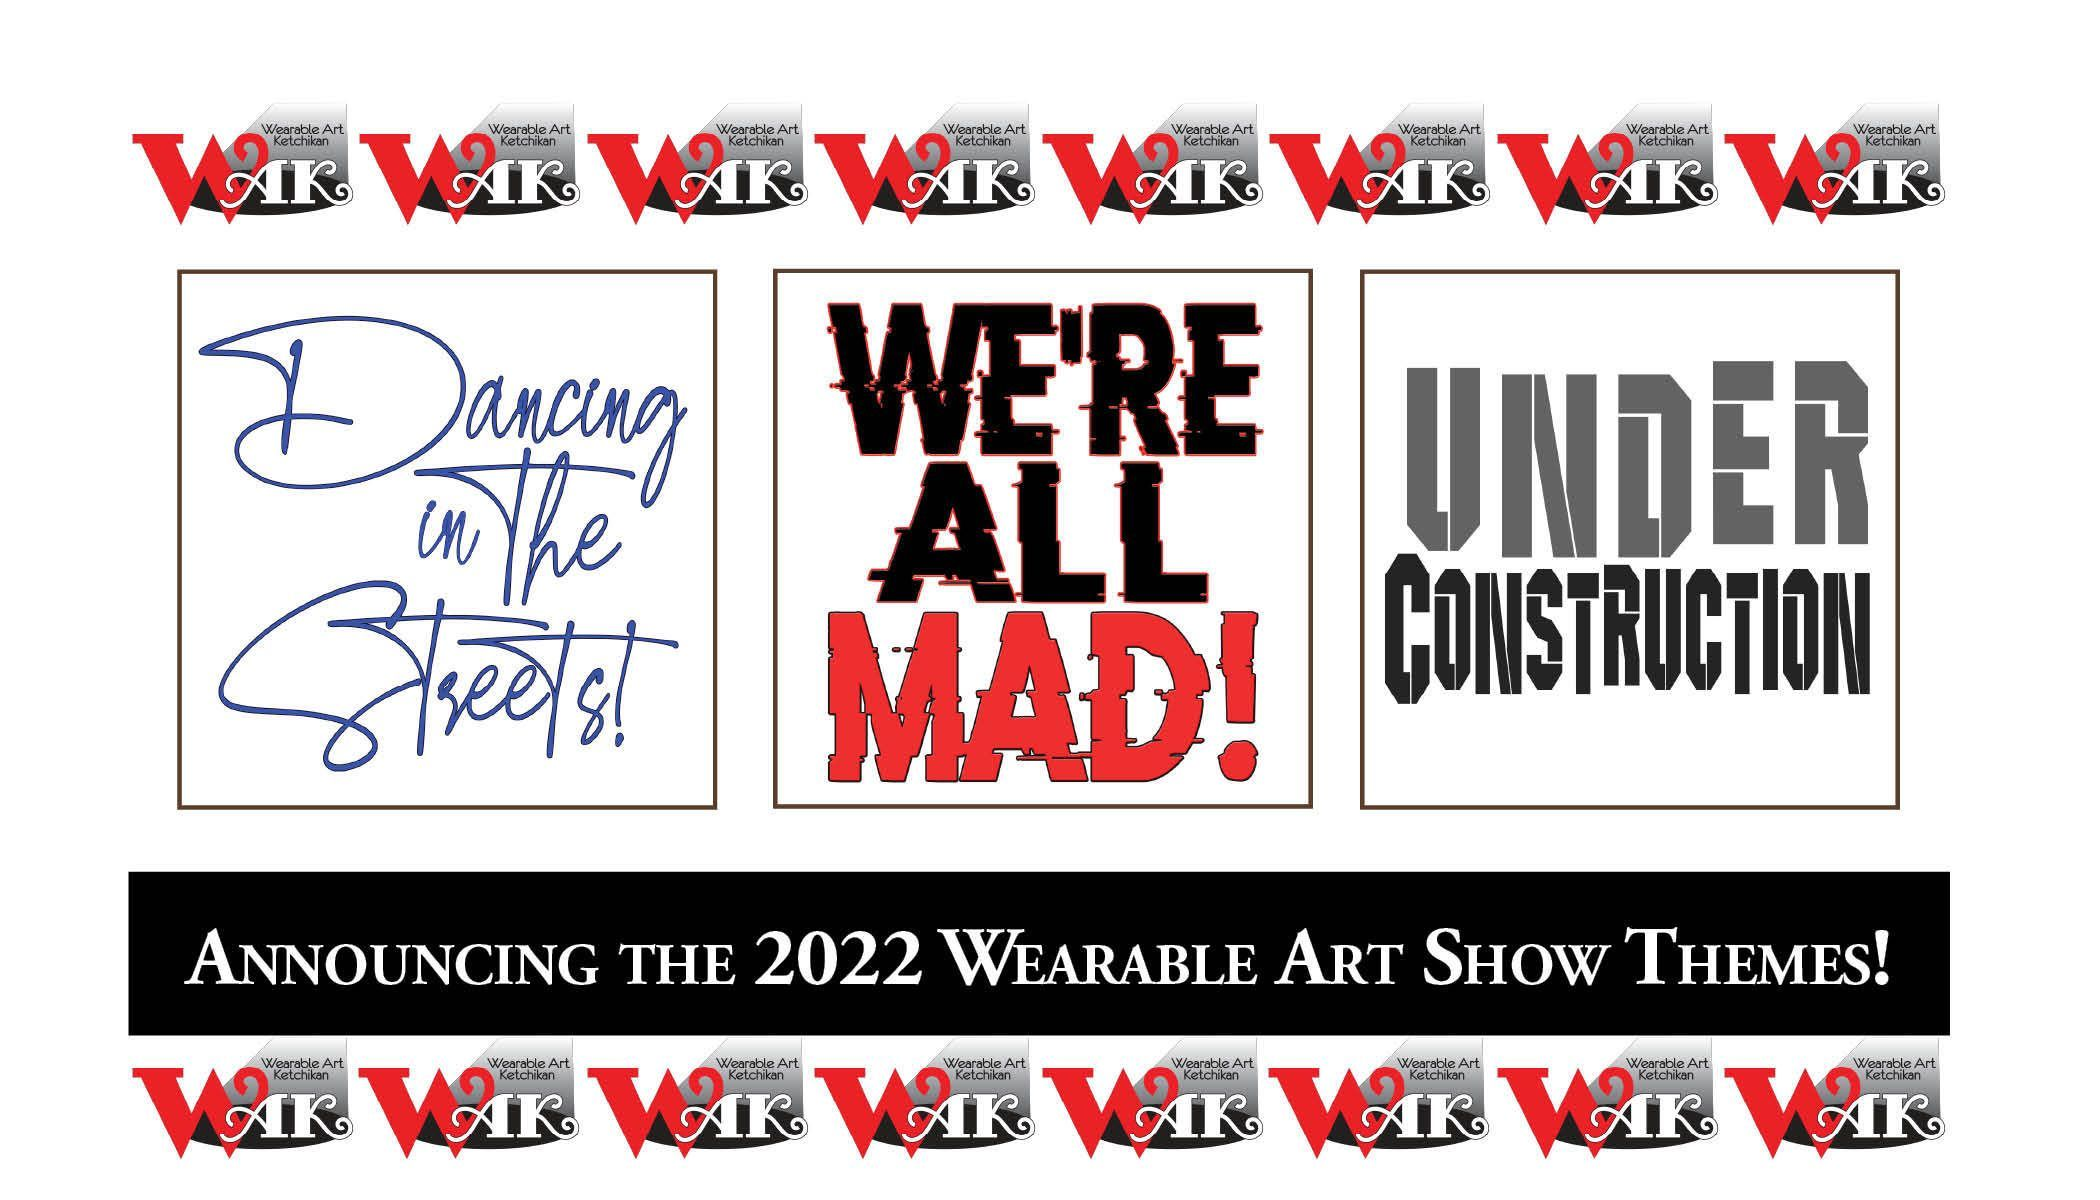 Announcing the 2022 Wearable Art Show Themes!